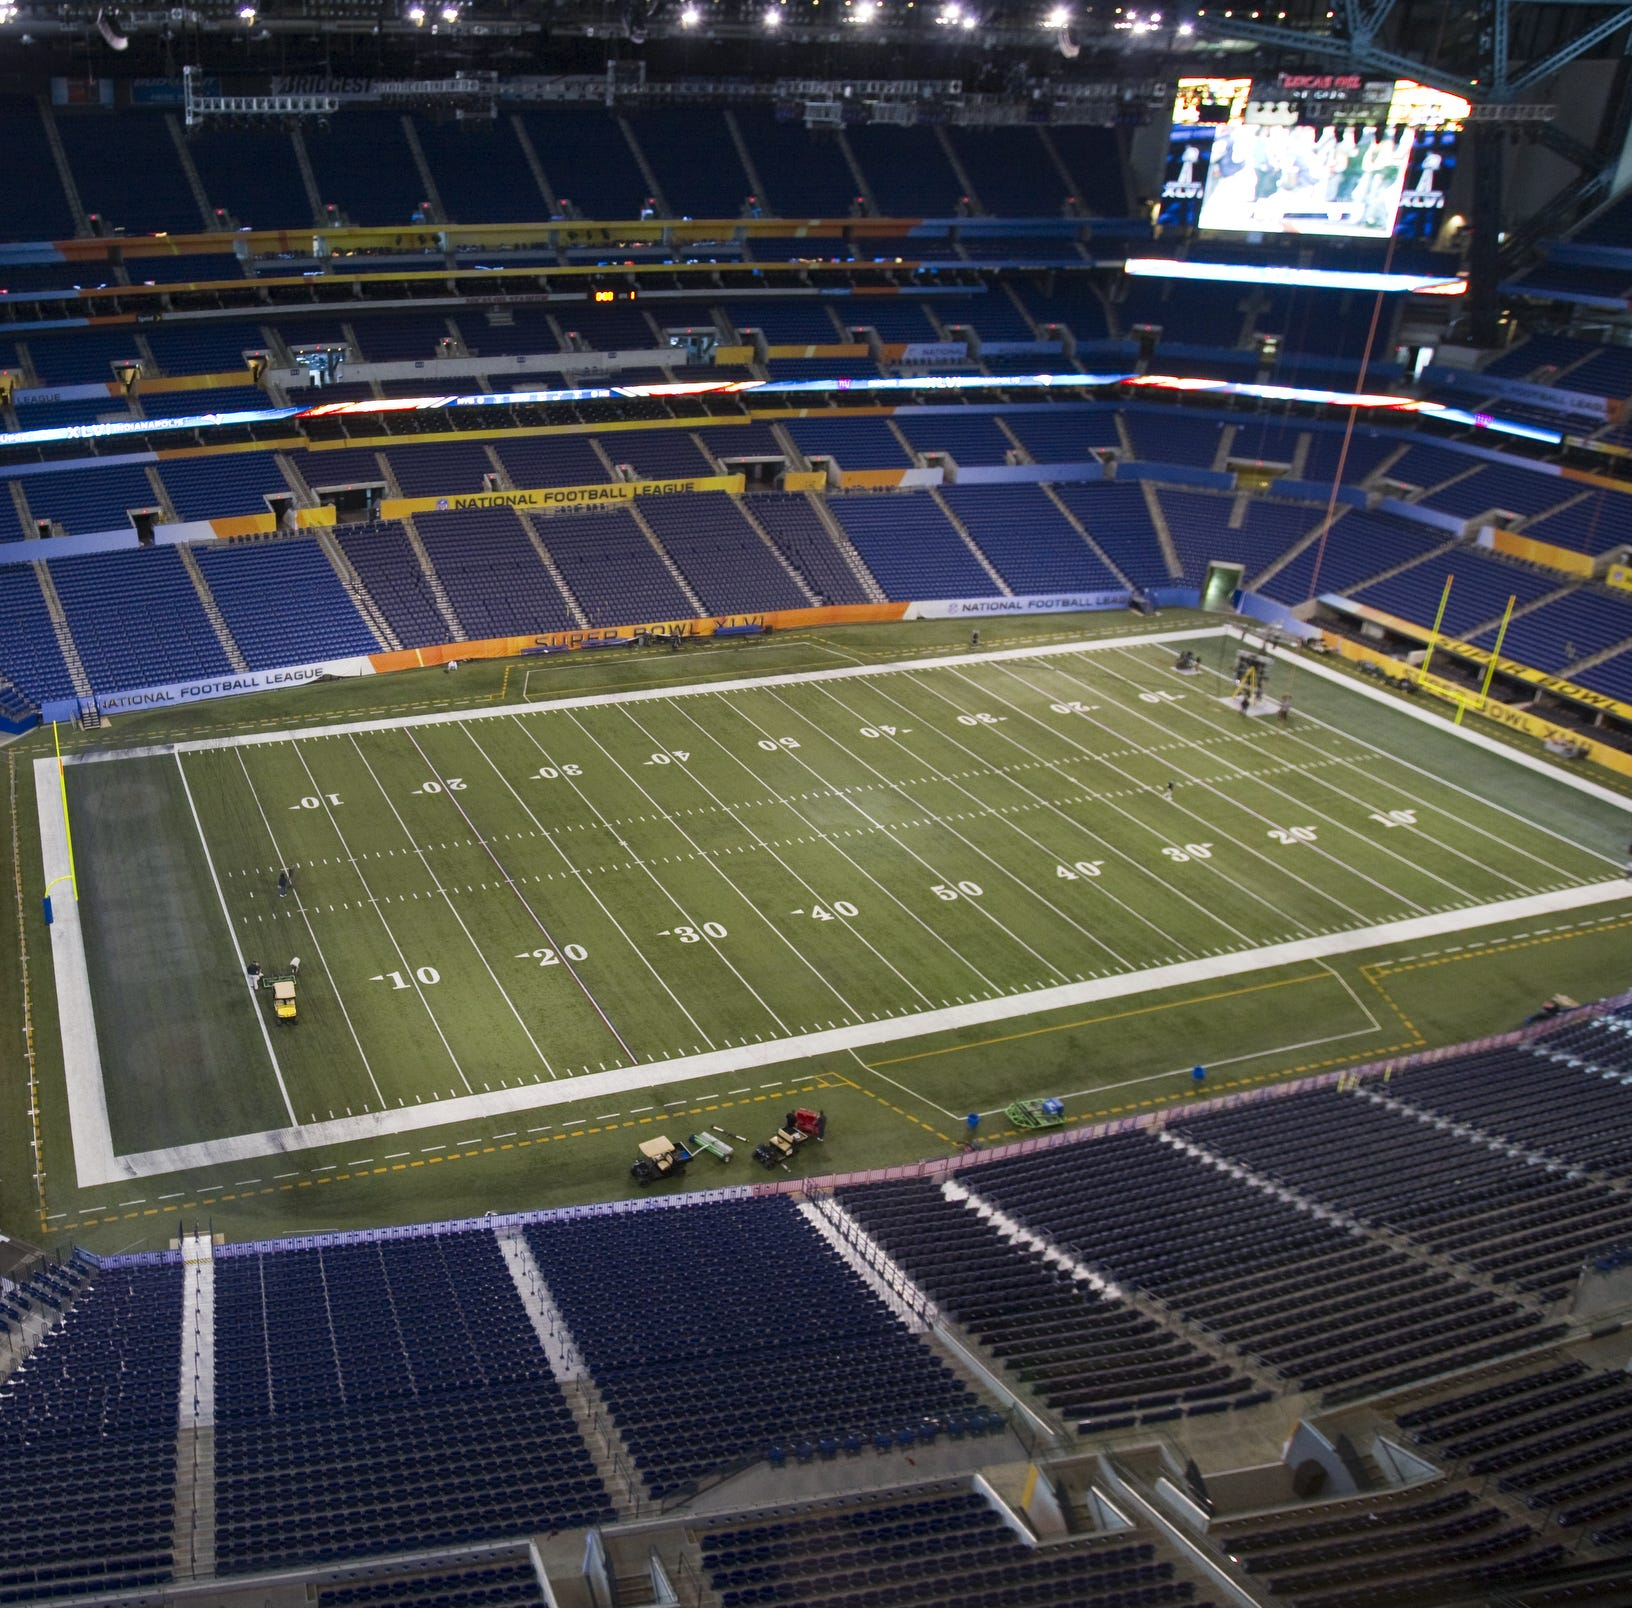 Making Indianapolis a sports technology hub is goal of politicians, team executives